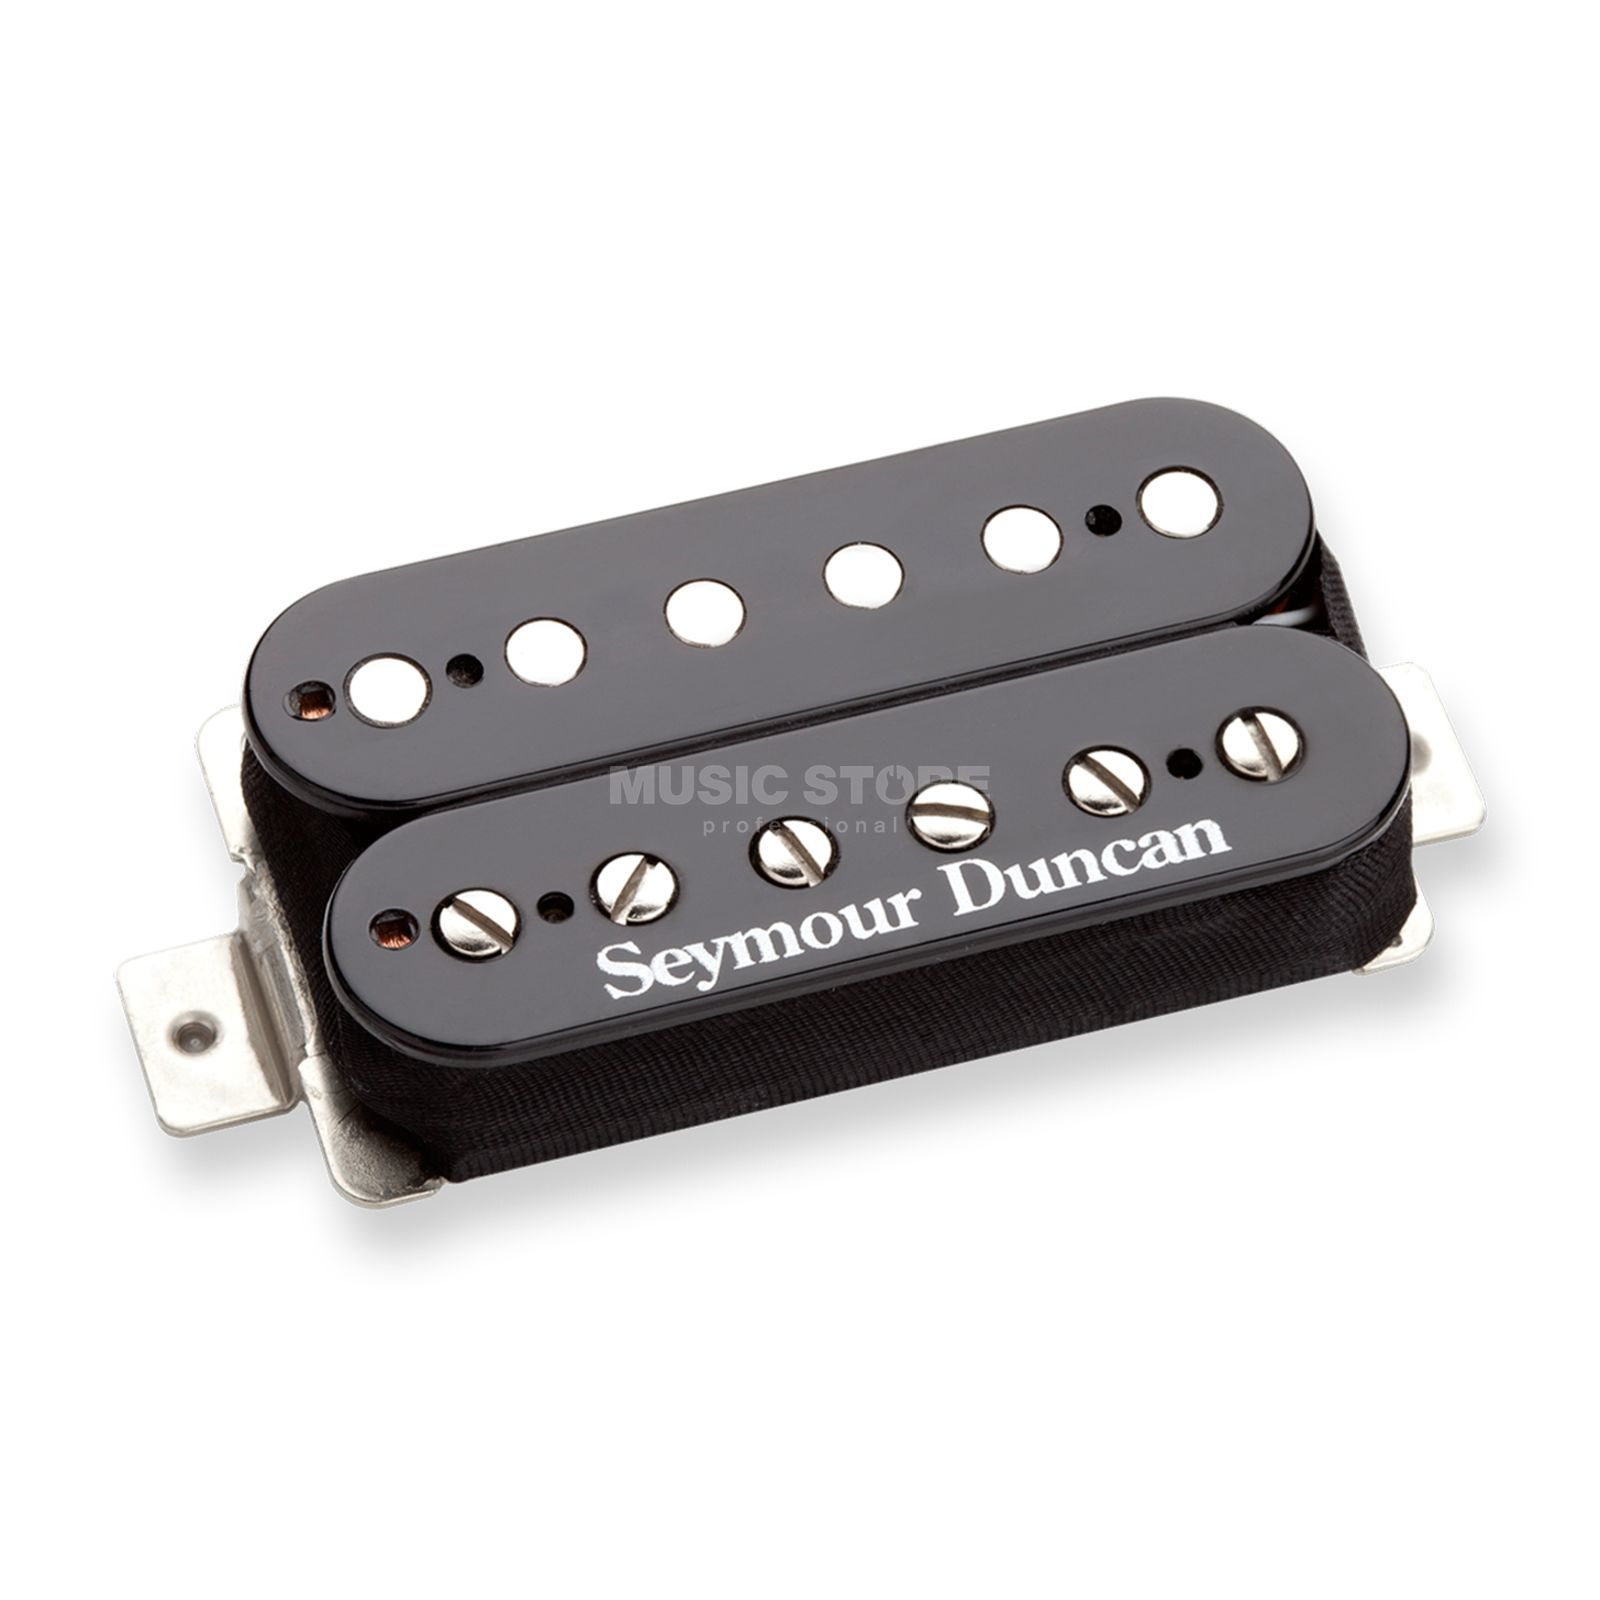 Seymour Duncan STB-4B BLK 4C Jeff Beck Bridge BlackTrembucker 4-phase Produktbillede